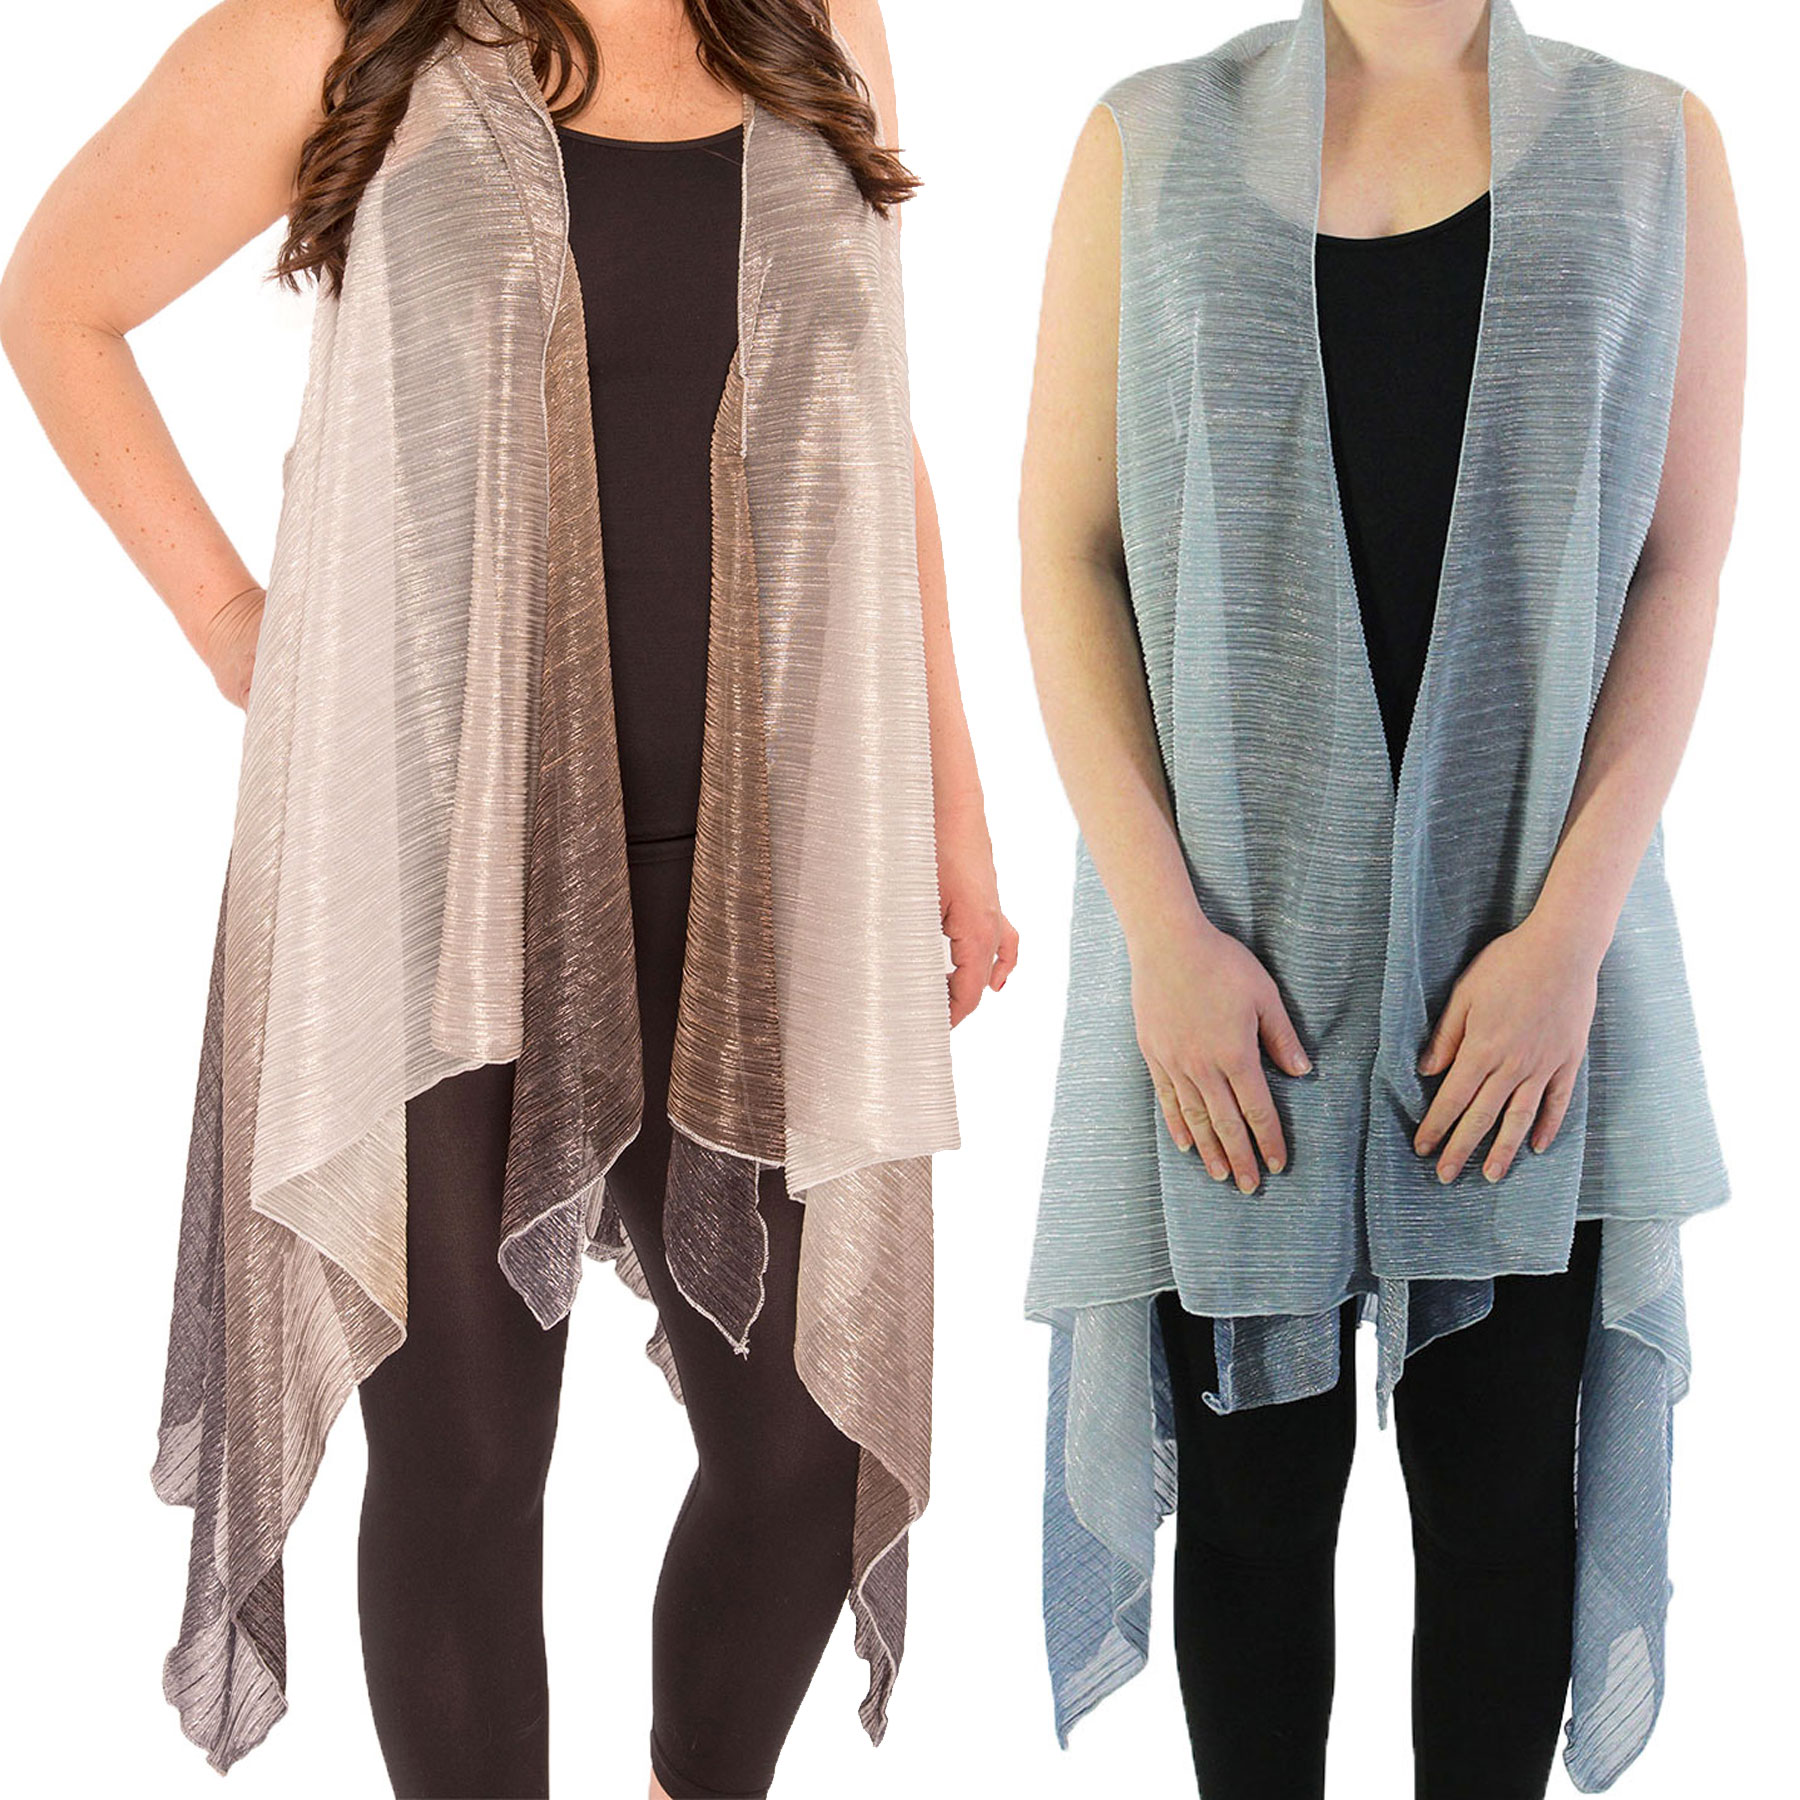 Vests - Metallic Ombre Pleated 8911